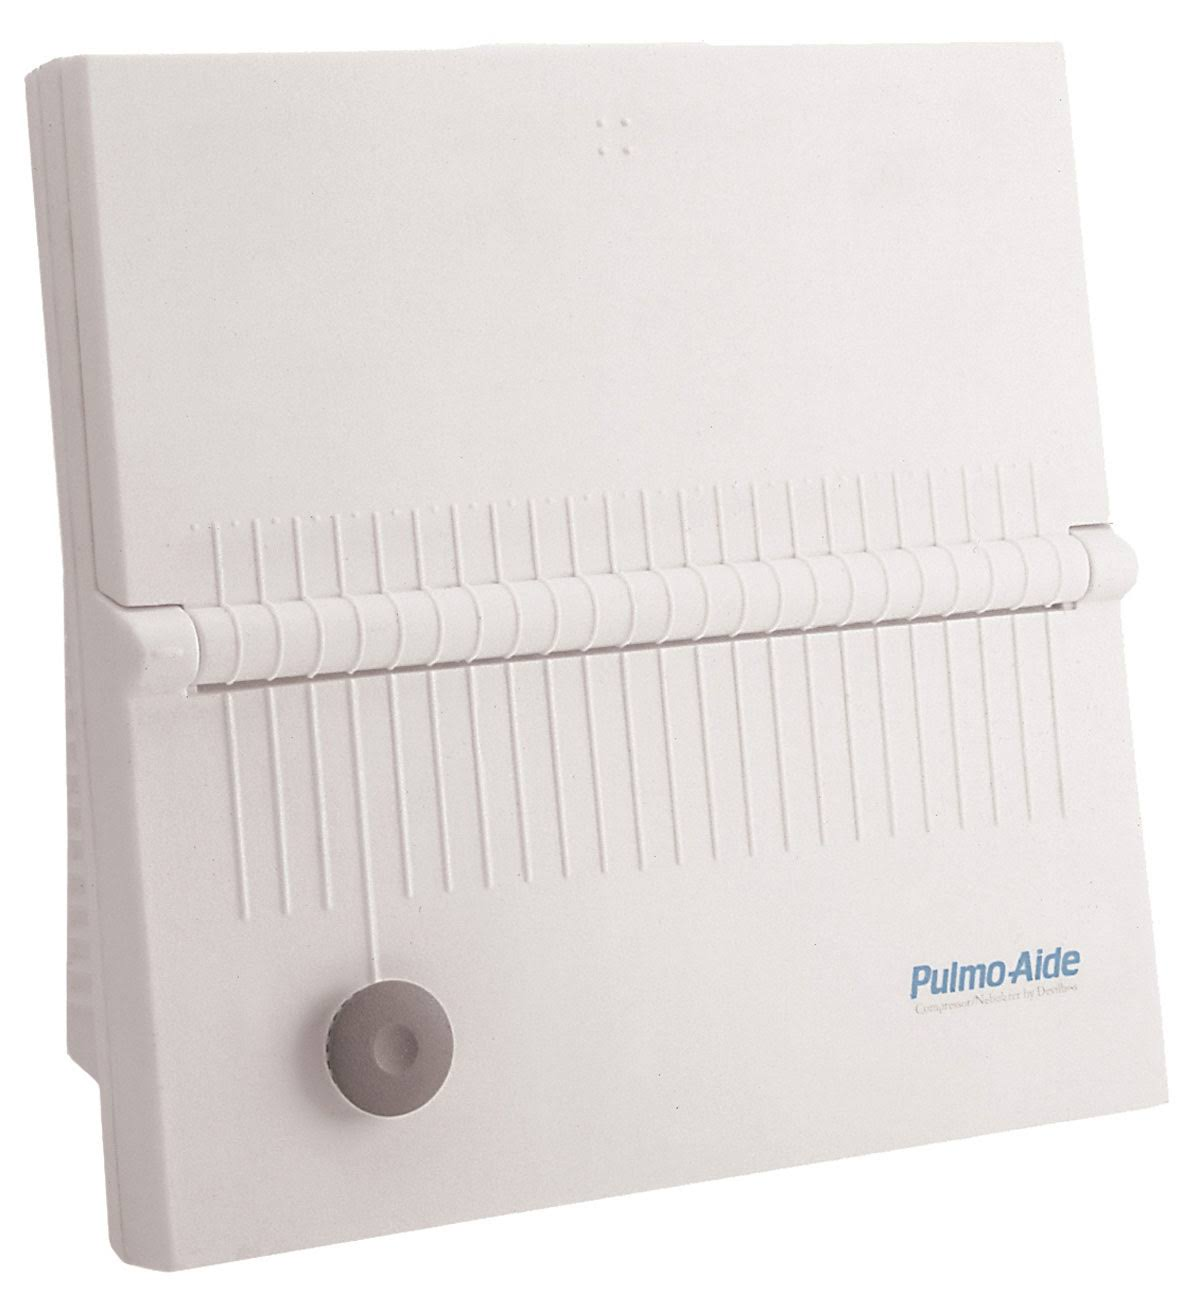 Pulmo-Aide Compressor Nebulizer System with Disposable Nebulizer